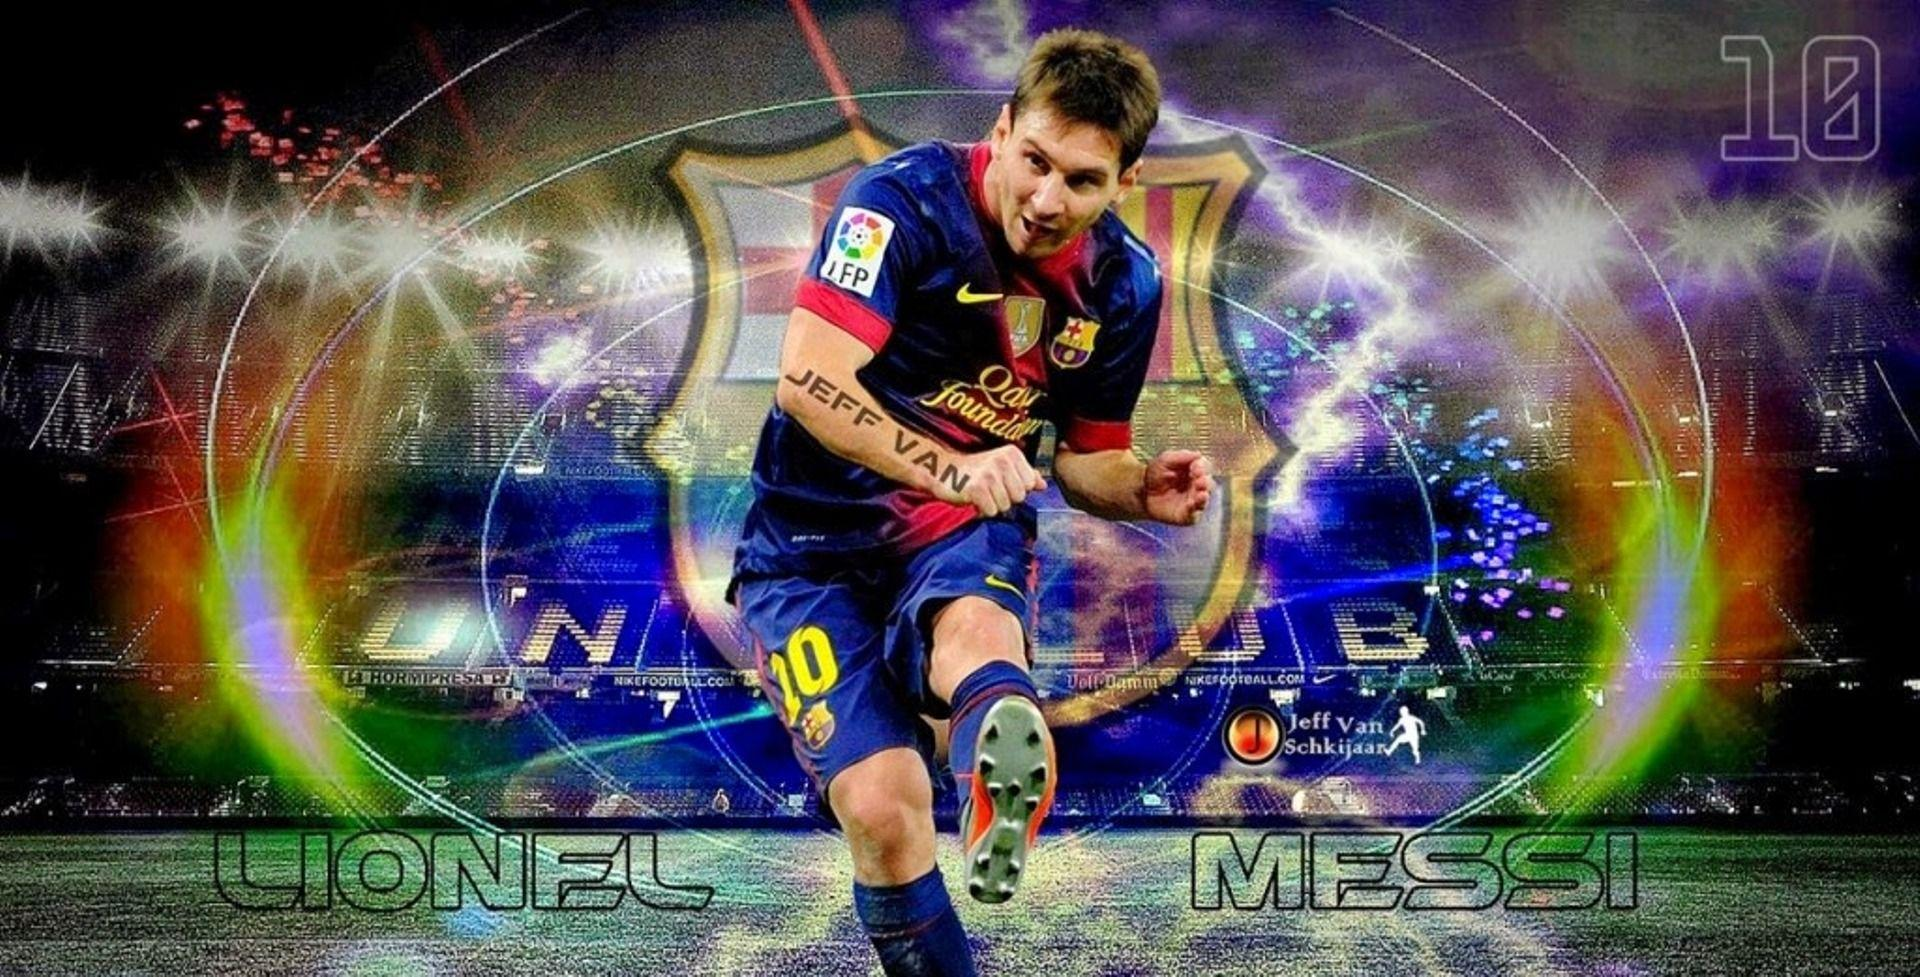 Lionel Messi 2014 2015 Barcelona Wallpapers Wallpaper For